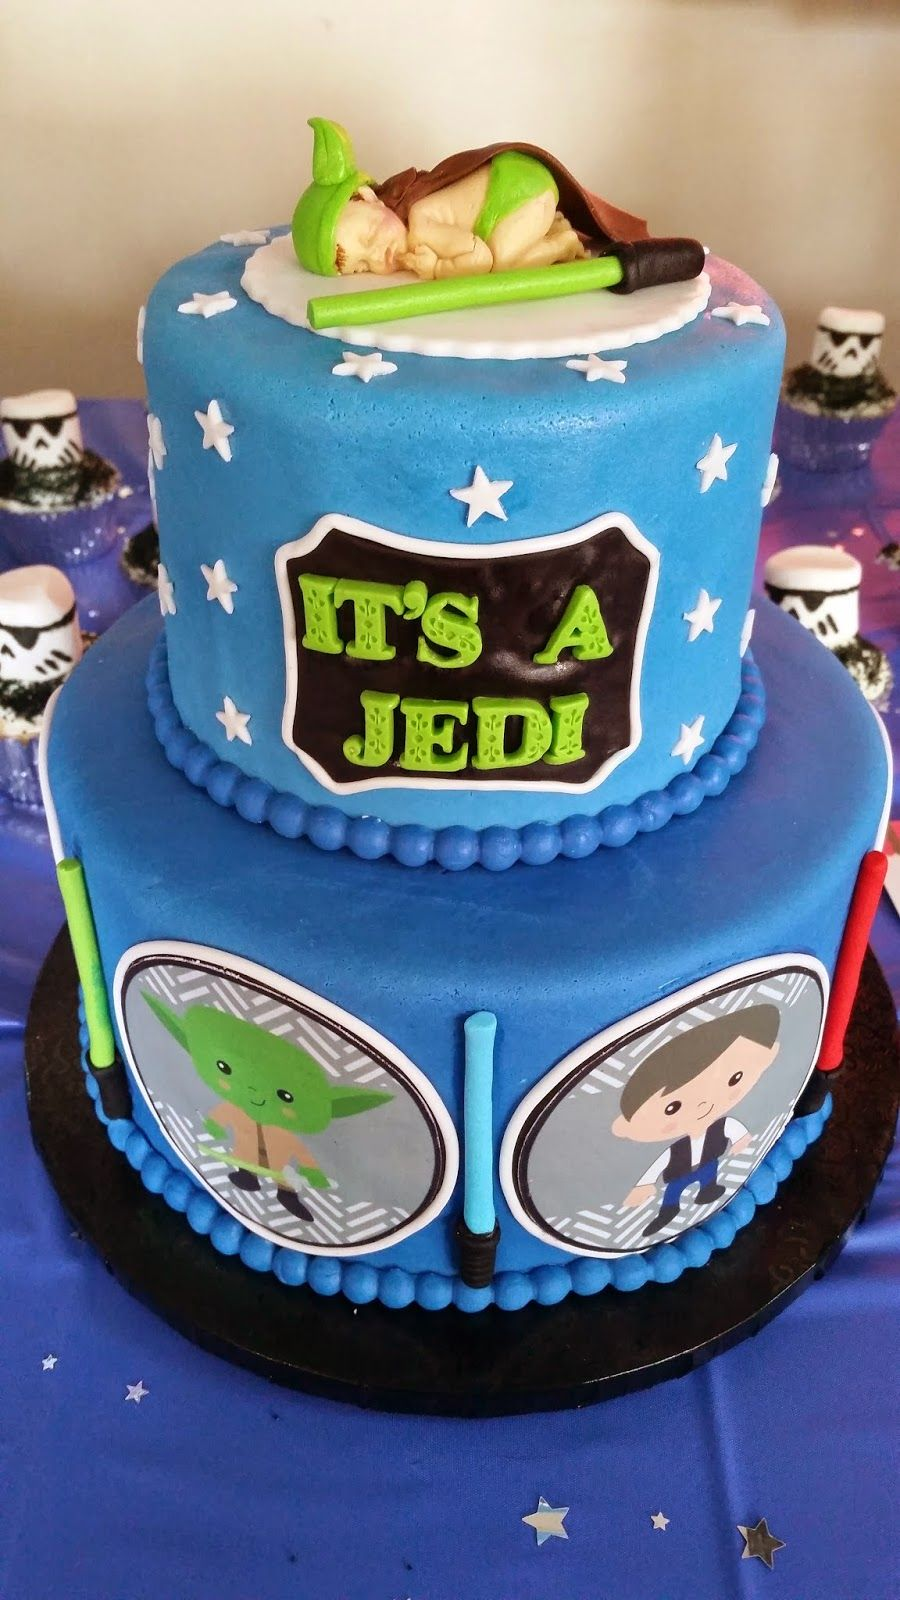 Star Wars Themed Cake For A Baby Shower! I Like The Baby Boy On Top But I  Wouldnu0027t Want The Green Ears To Represent Yoda. I Would Just Want Him To Be  ...